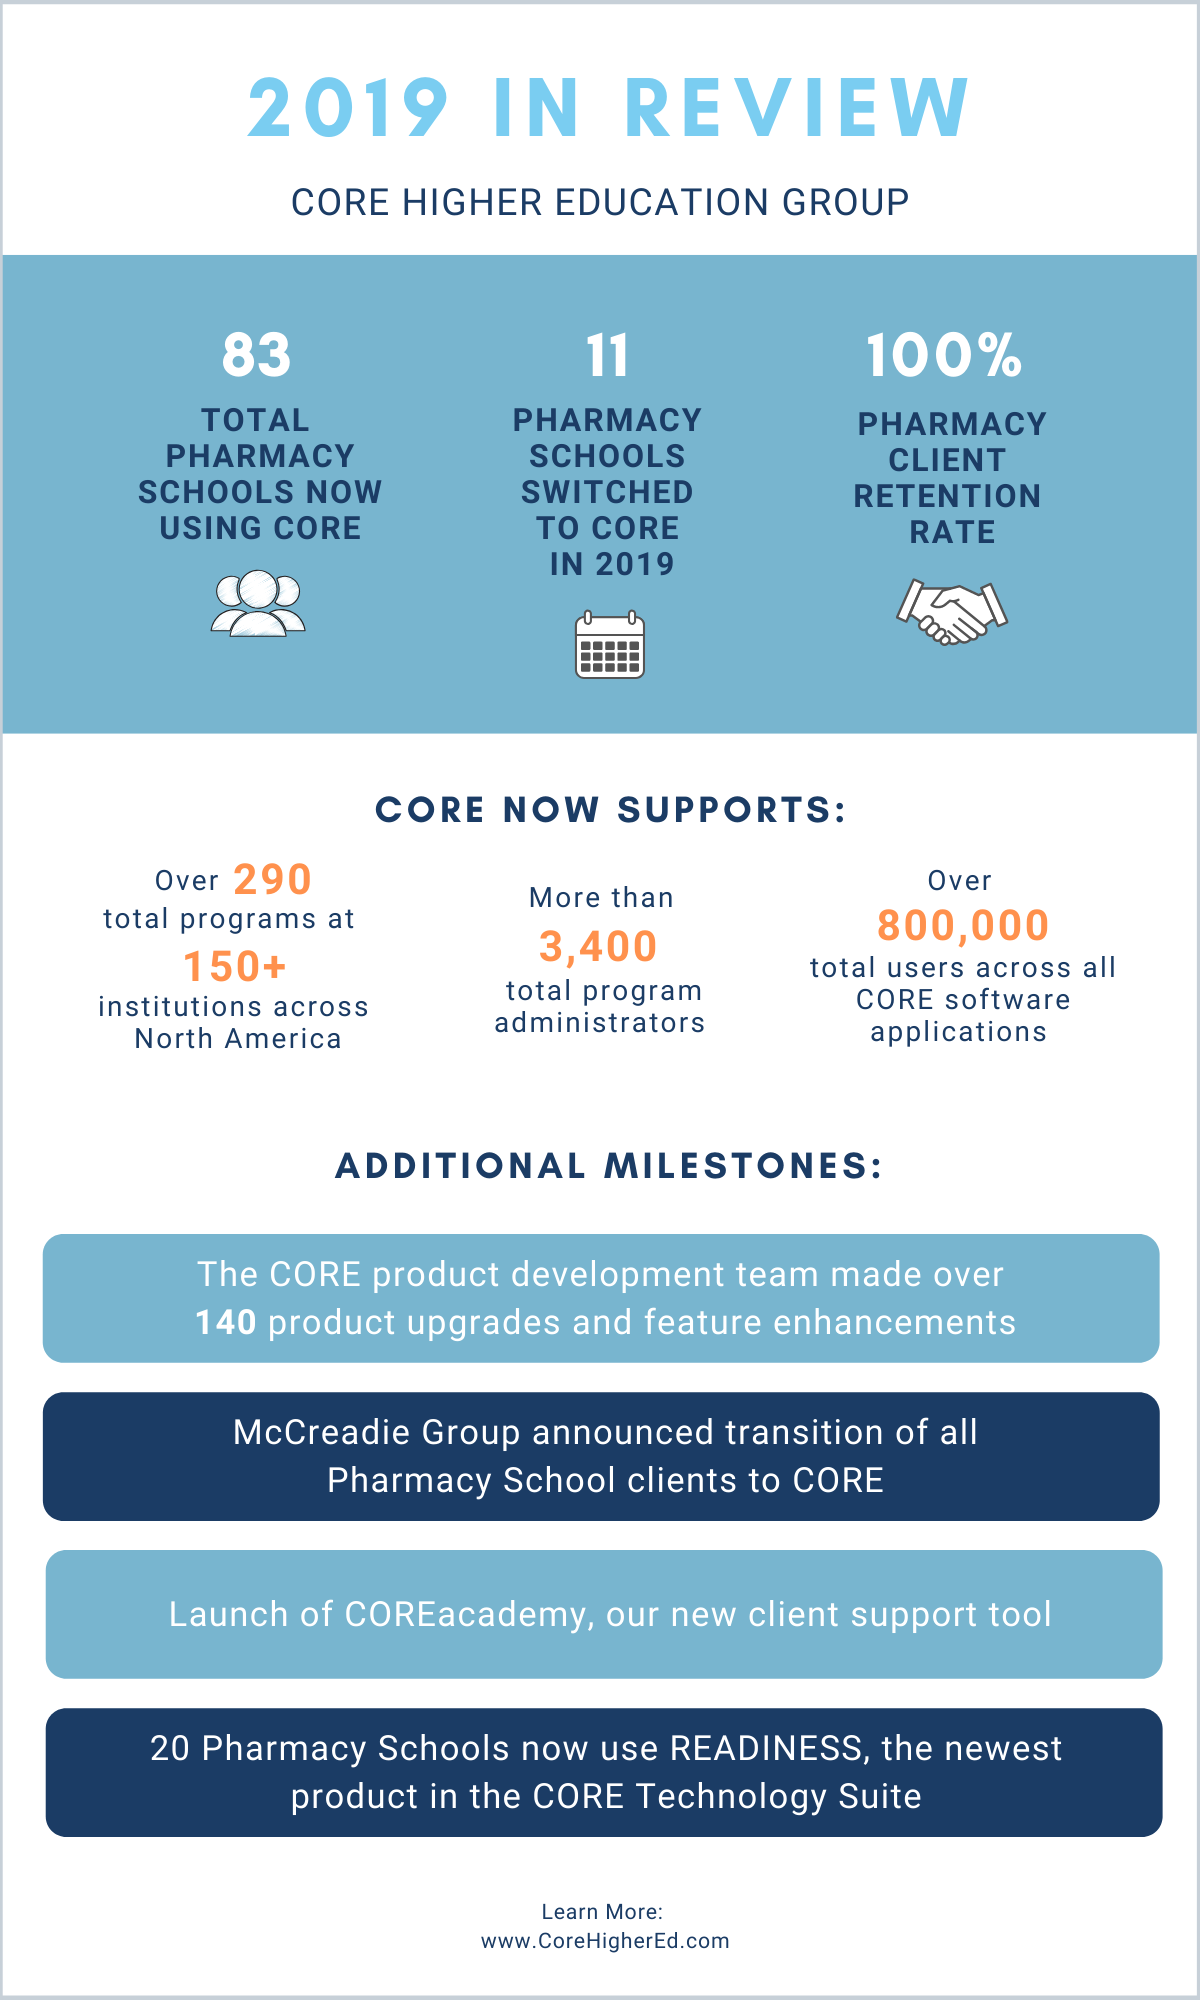 End of Year Review - Infographic - Pharmacy Leads.png